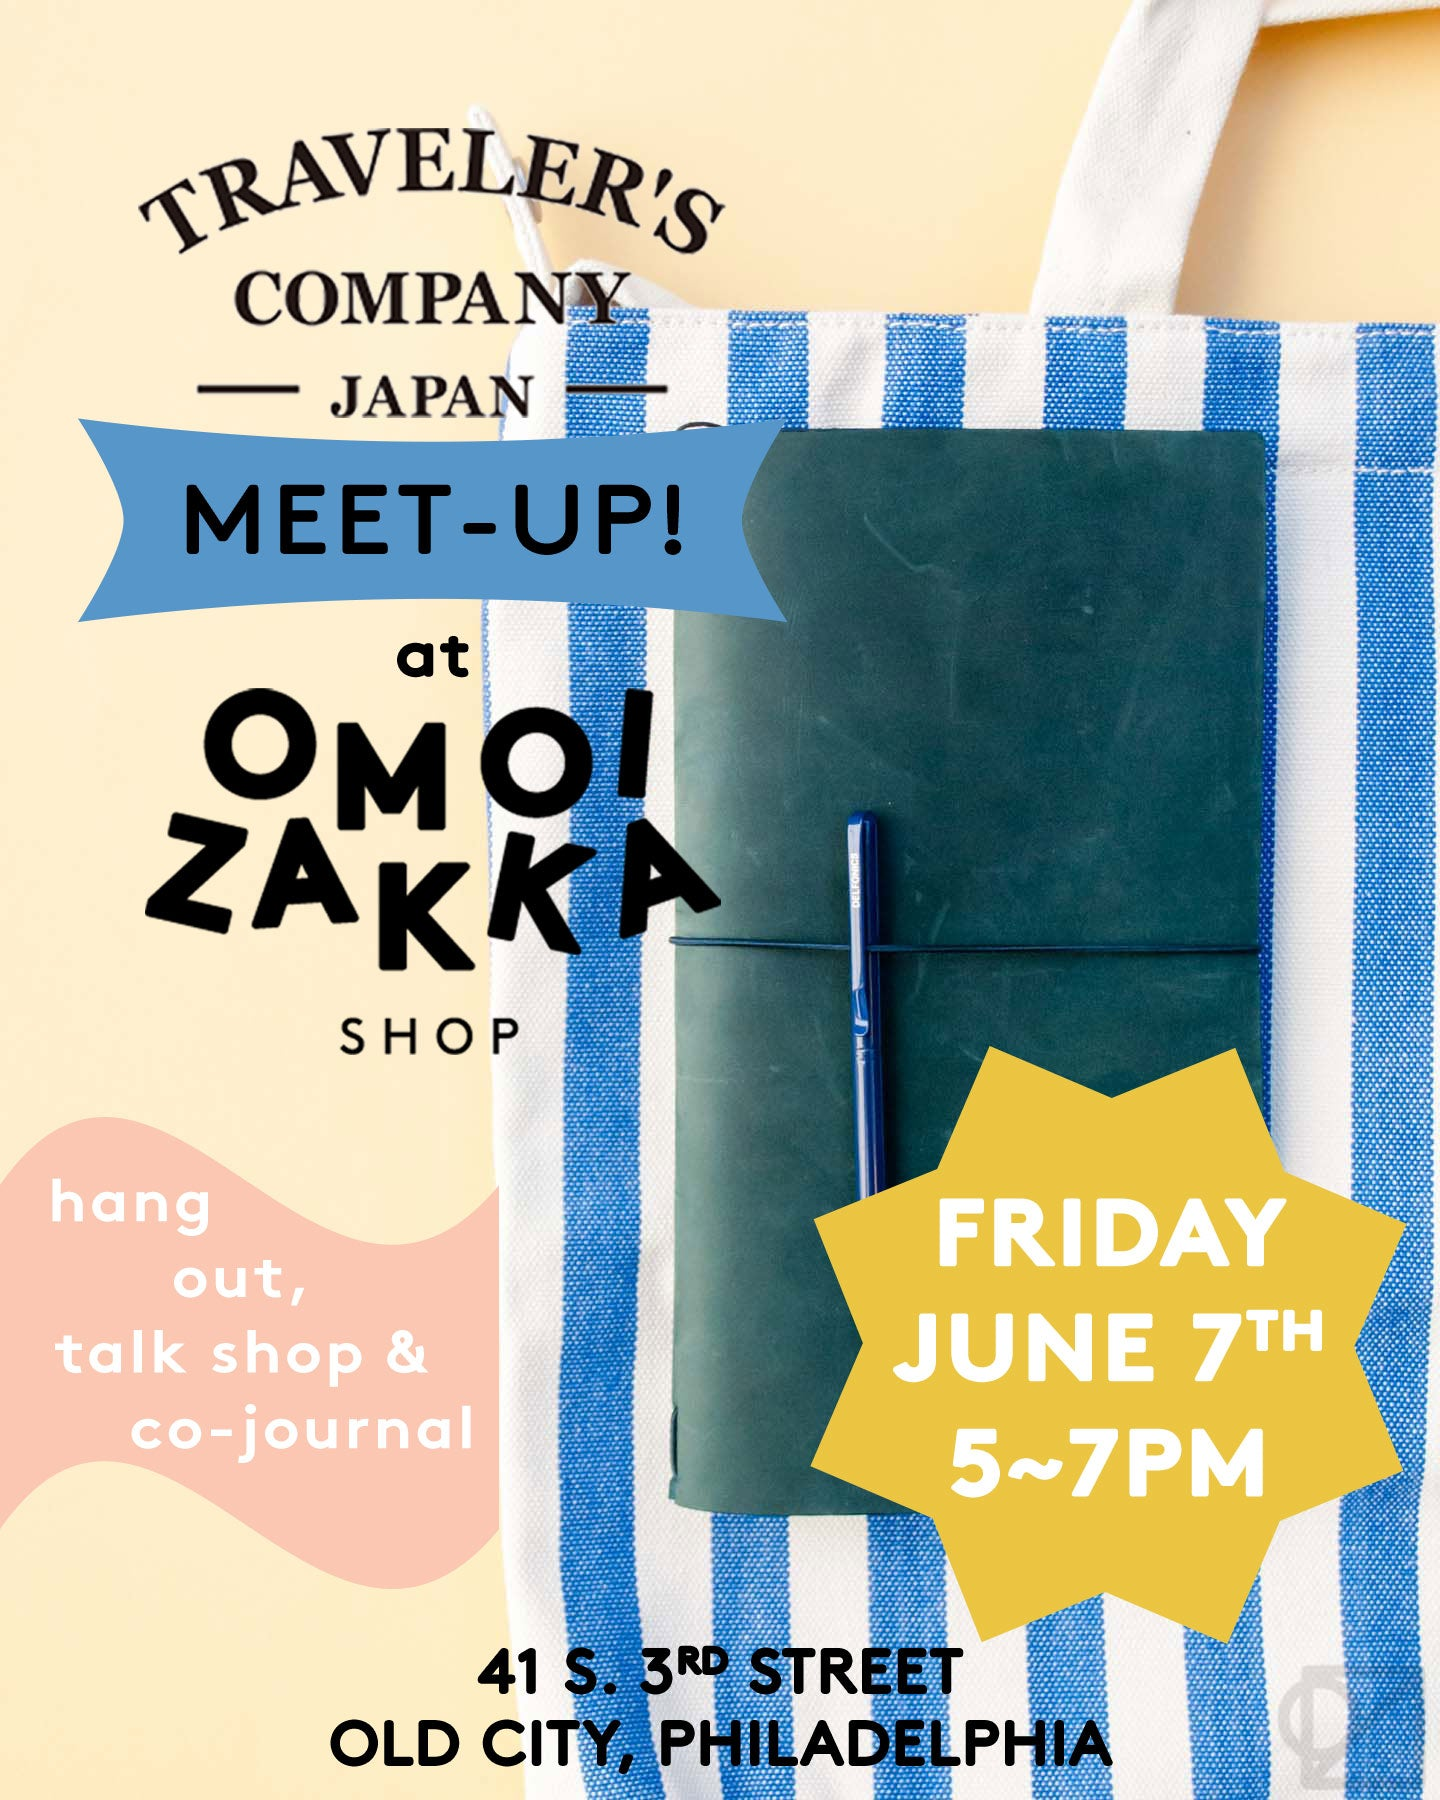 You're Invited to Our Late Spring TRAVELER'S Meet-Up!